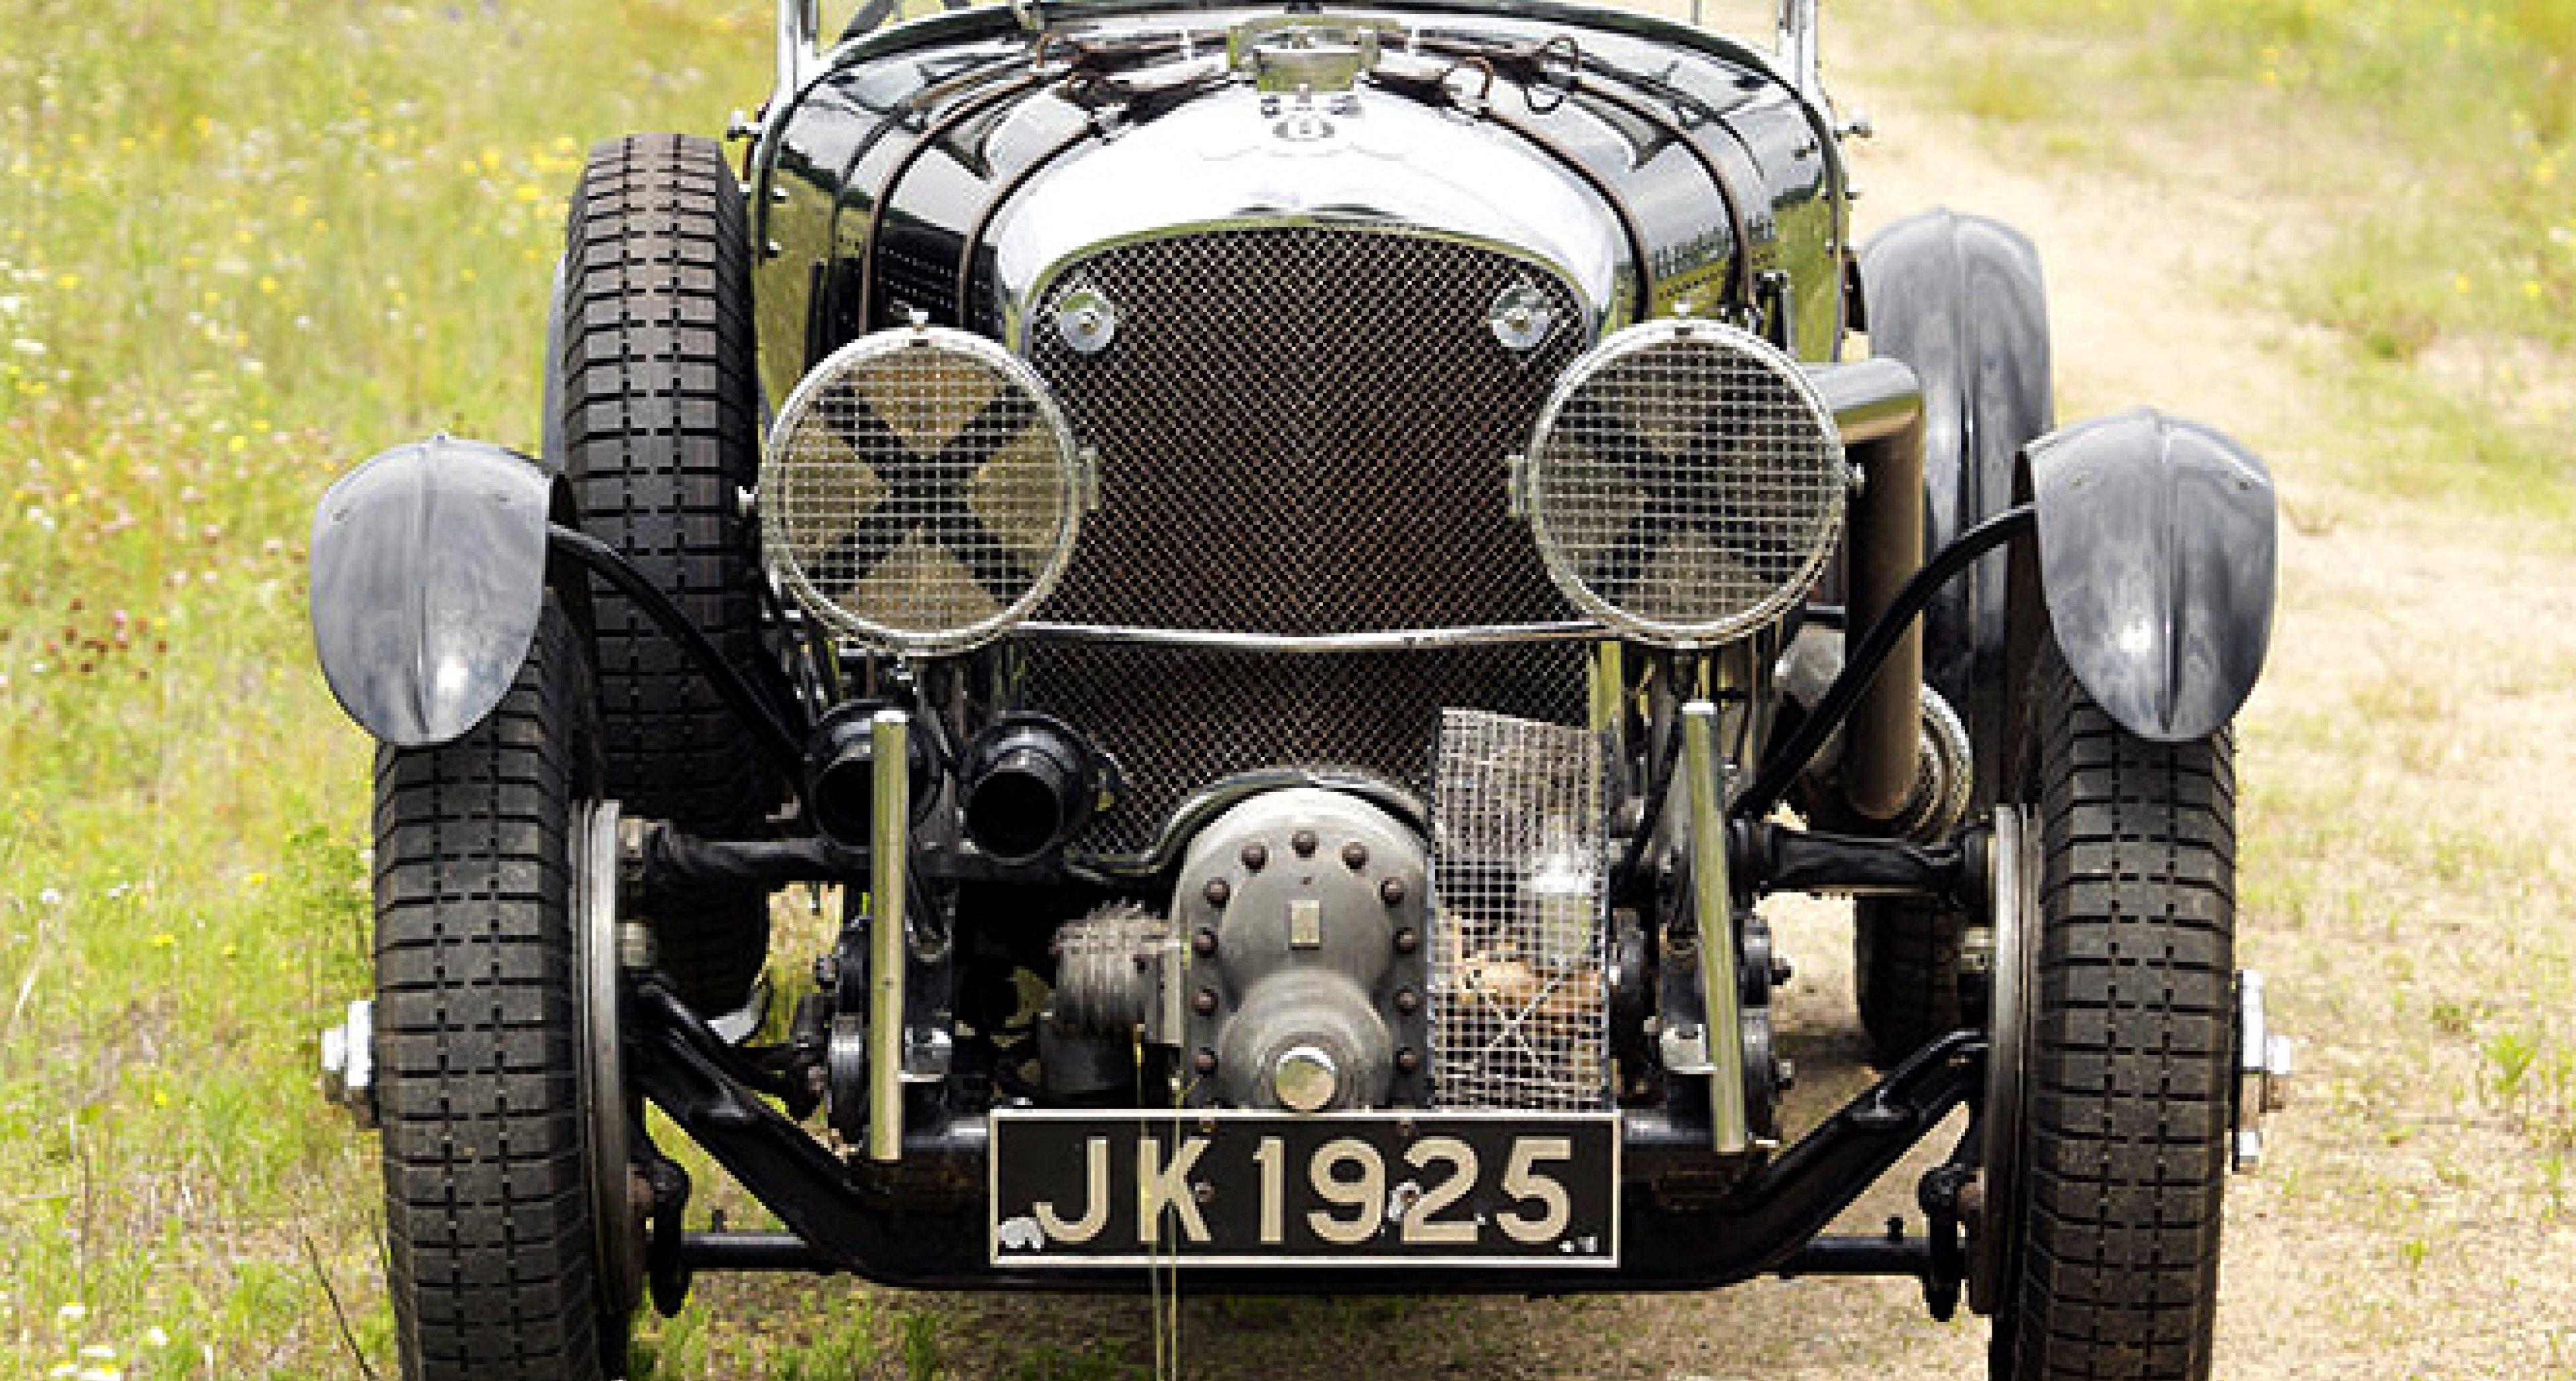 Blower Bentley Le Mans Of Charles R.J. Noble